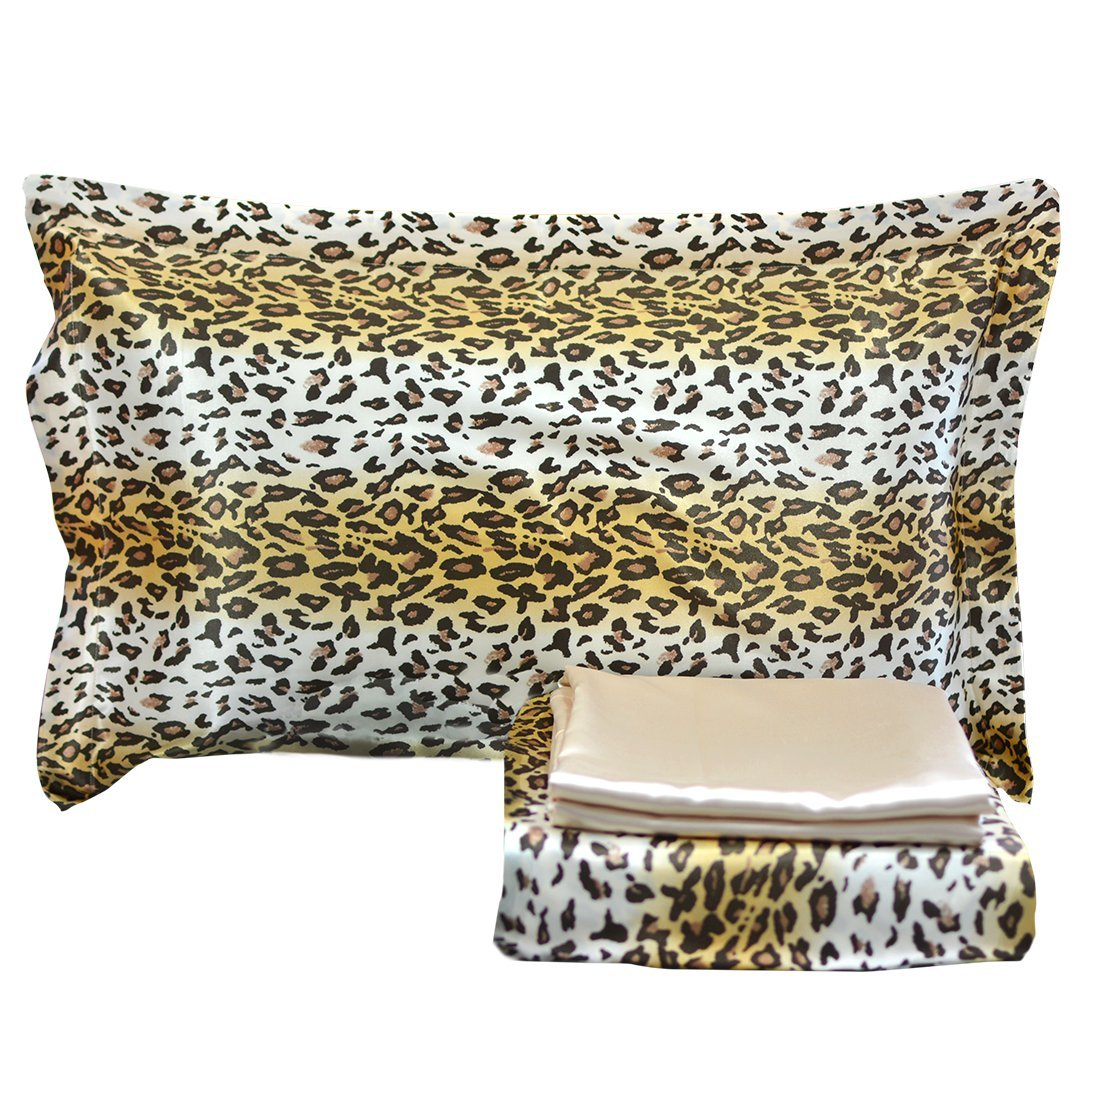 Brown bedding sets queen - Fadfay Luxury 4 Piece Satin Silky Bed Sheet Set Bedding Collection Leopard Print